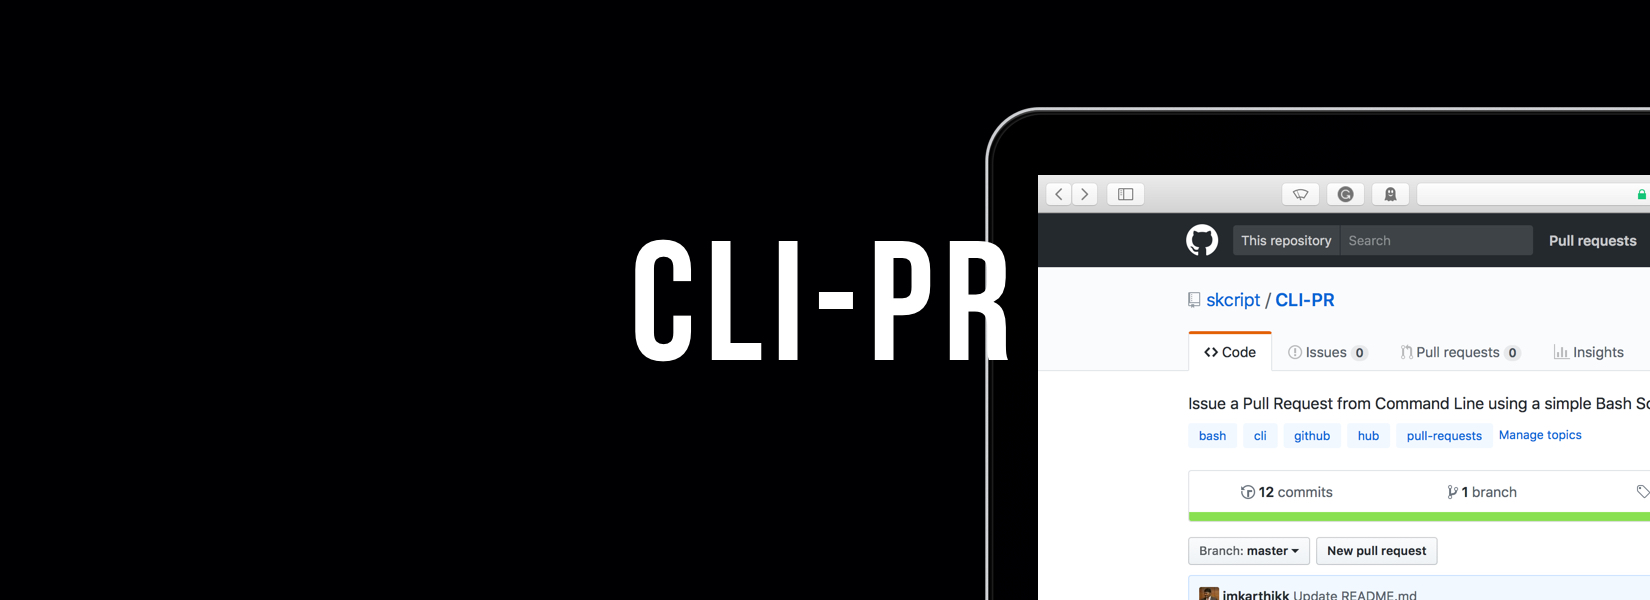 CLI-PR; A simple bash script for issuing Pull Requests to Github over Command Line